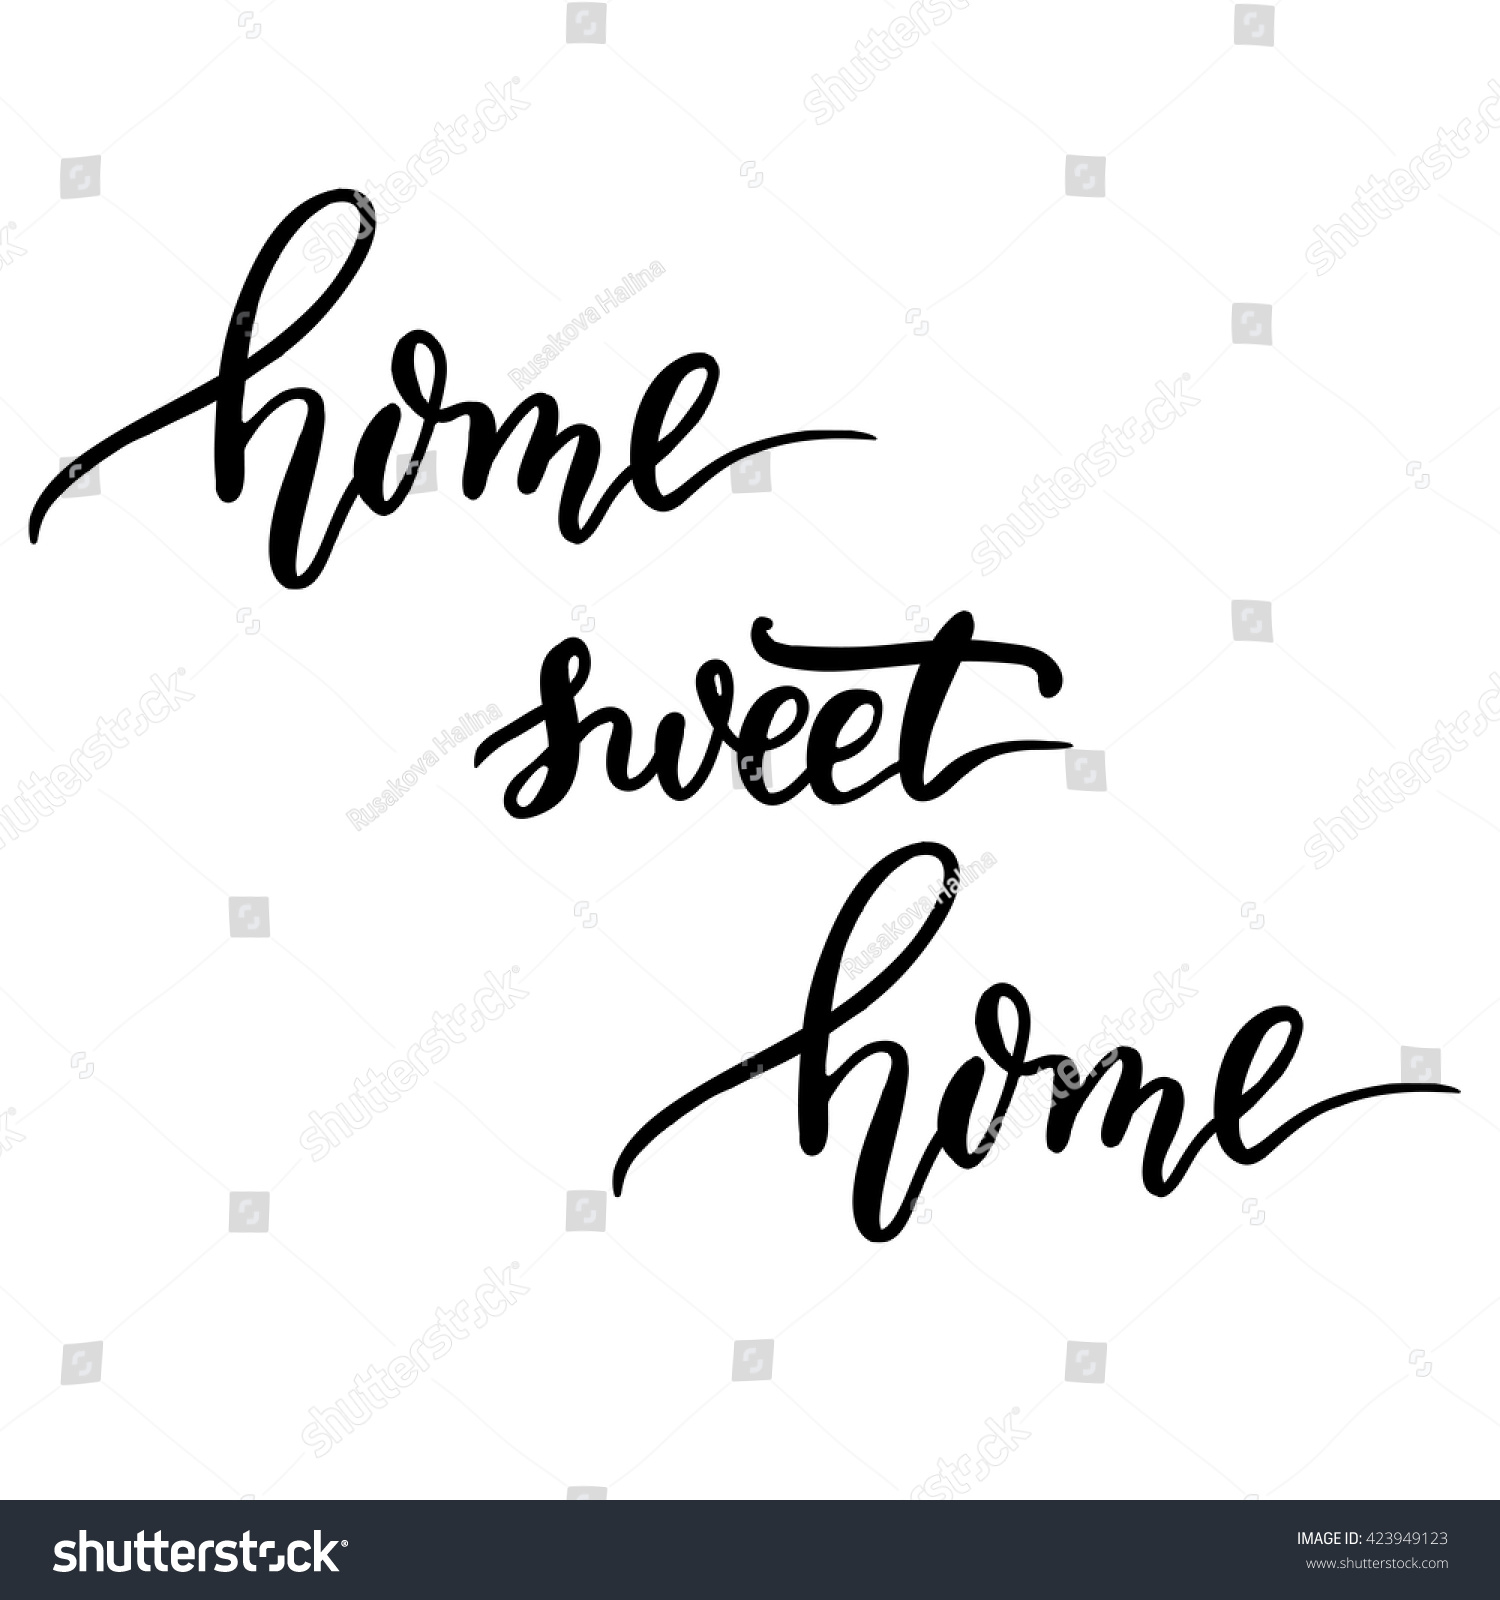 Home sweet hand lettering vector modern calligraphy